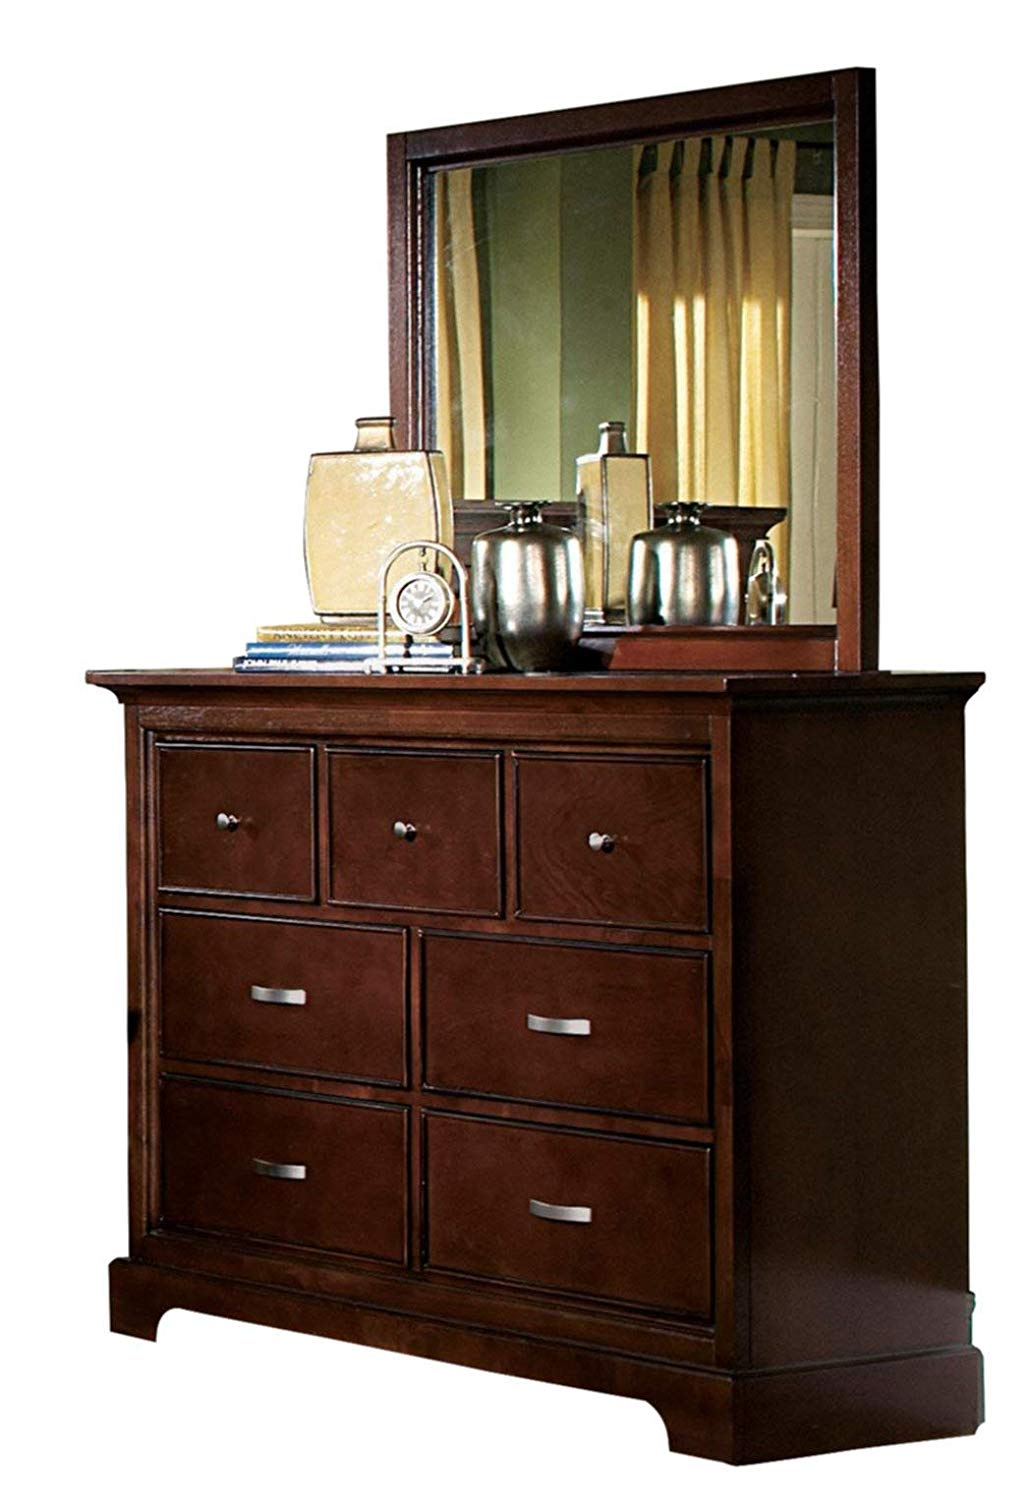 Get Quotations Gaston Wood Dresser Mirror In Brown Cherry